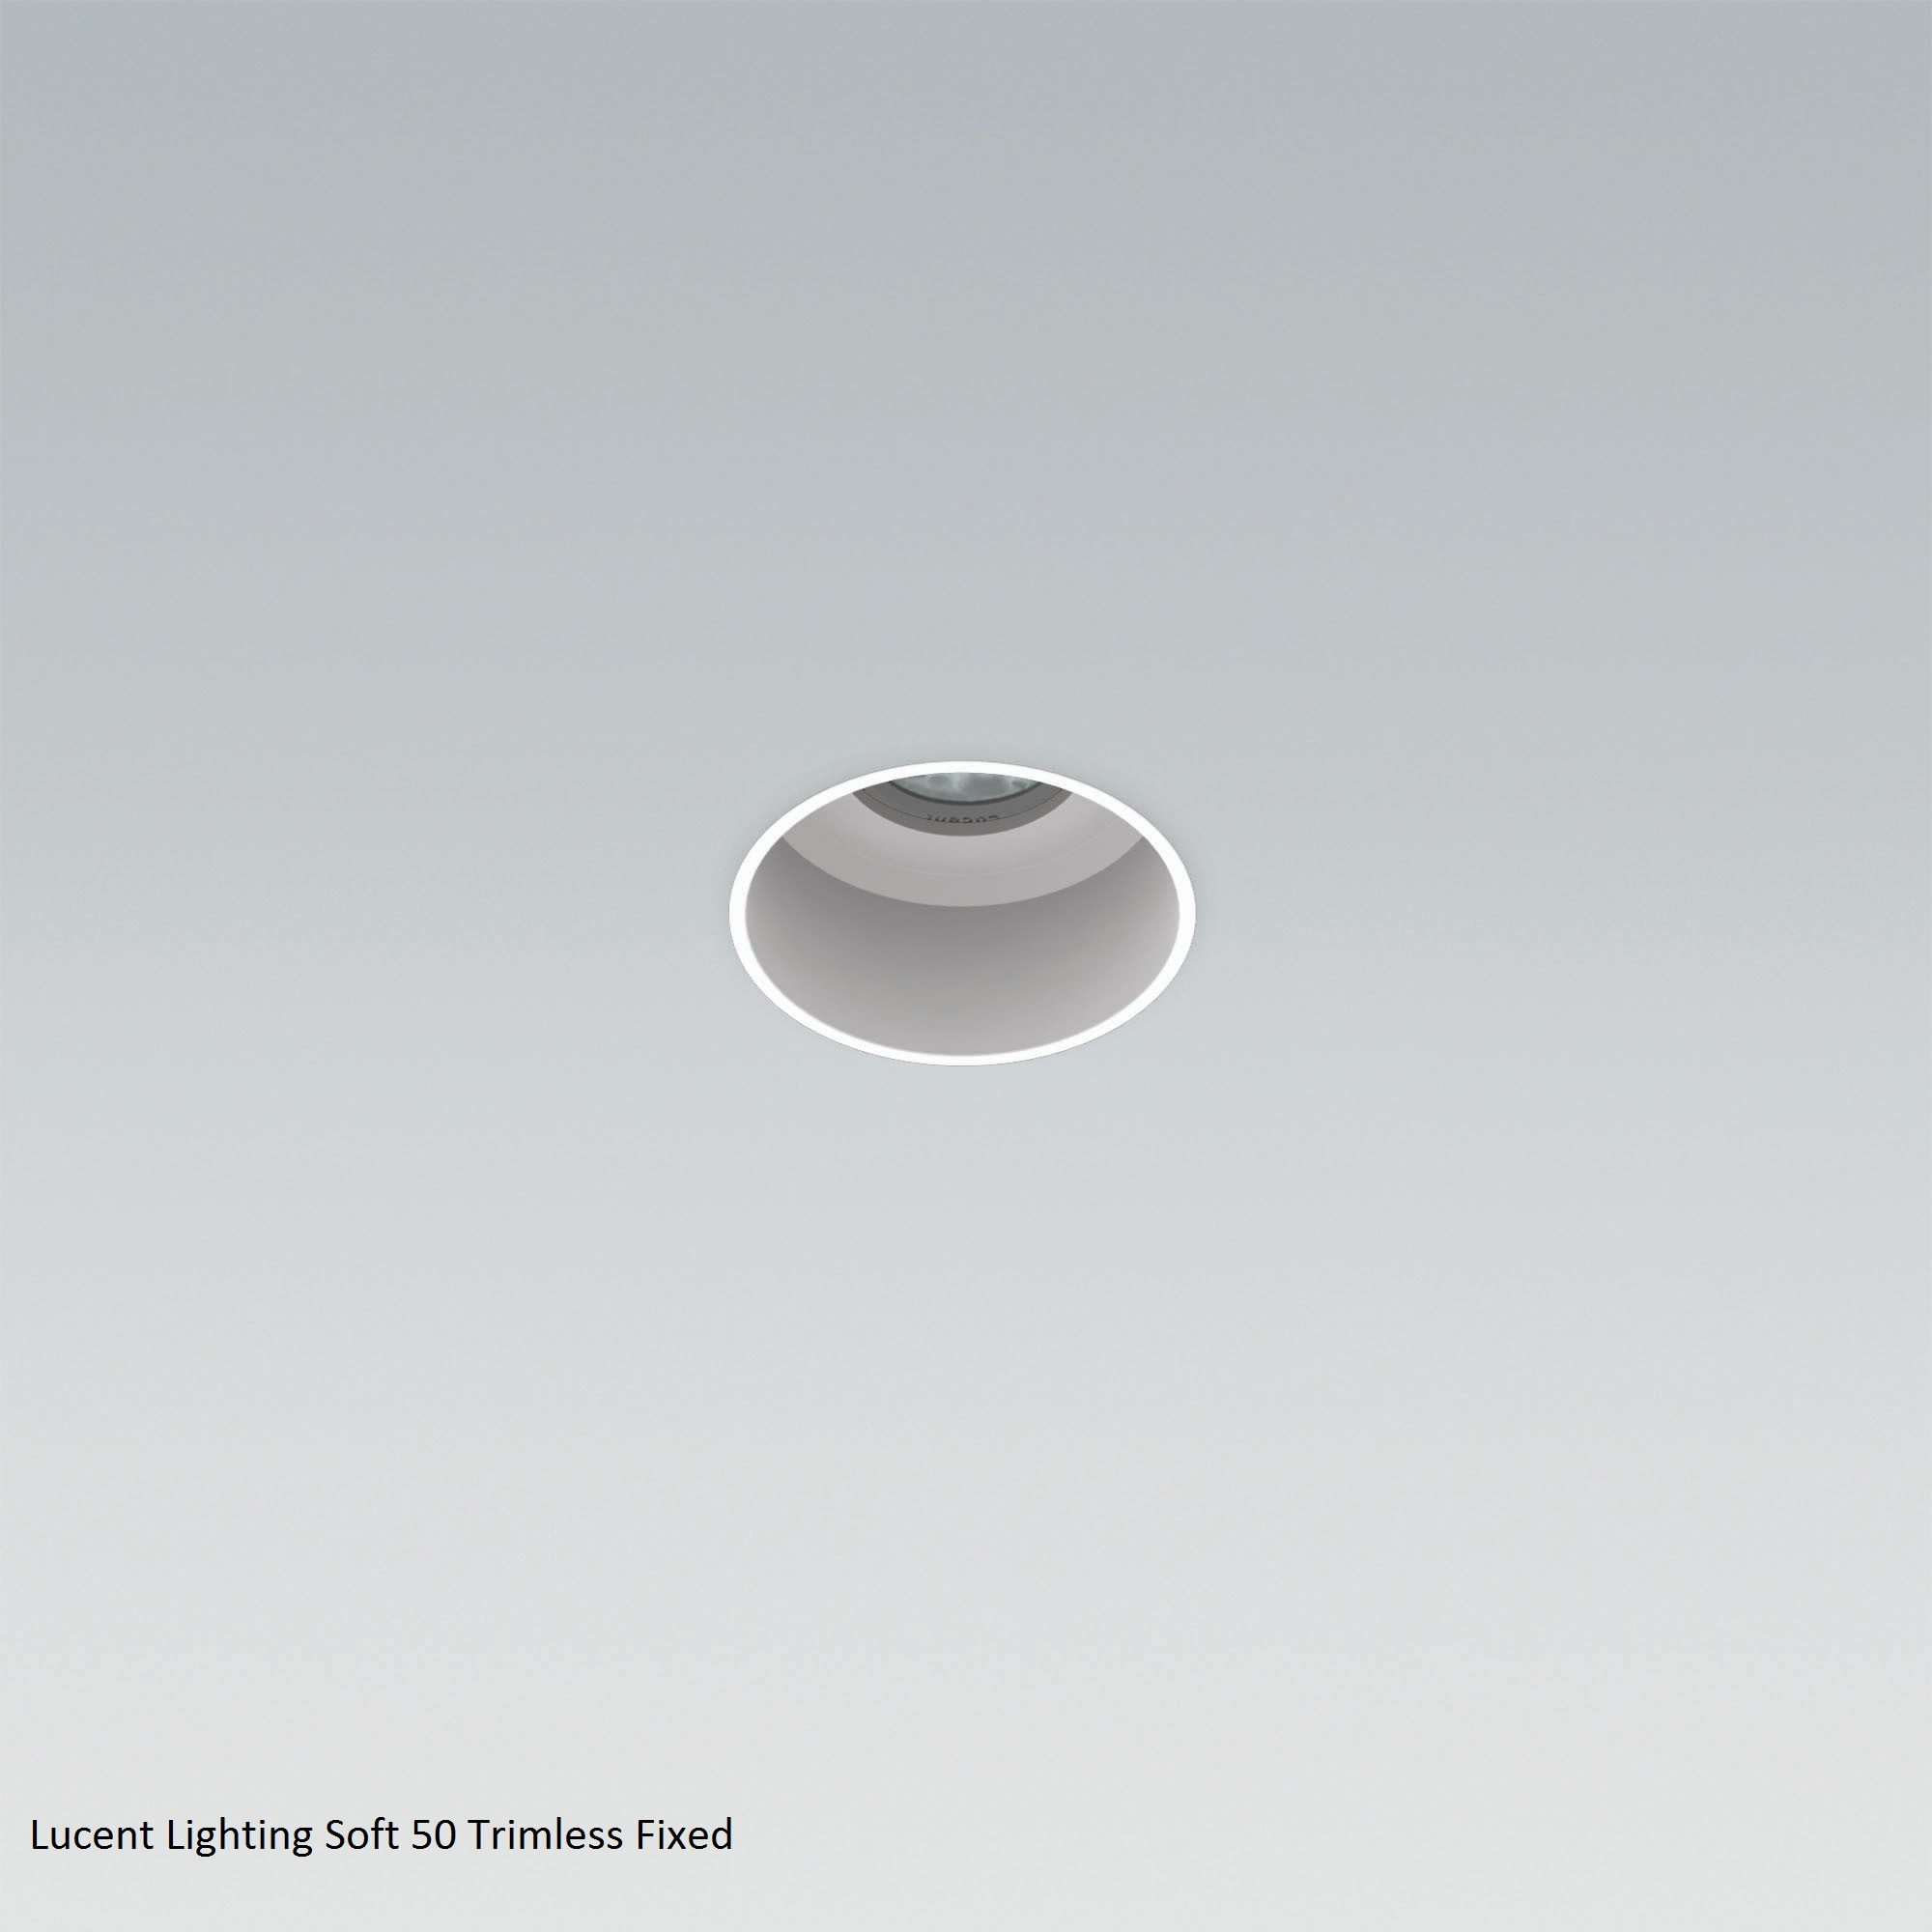 lucent-lighting-soft-50-trimless-fixed